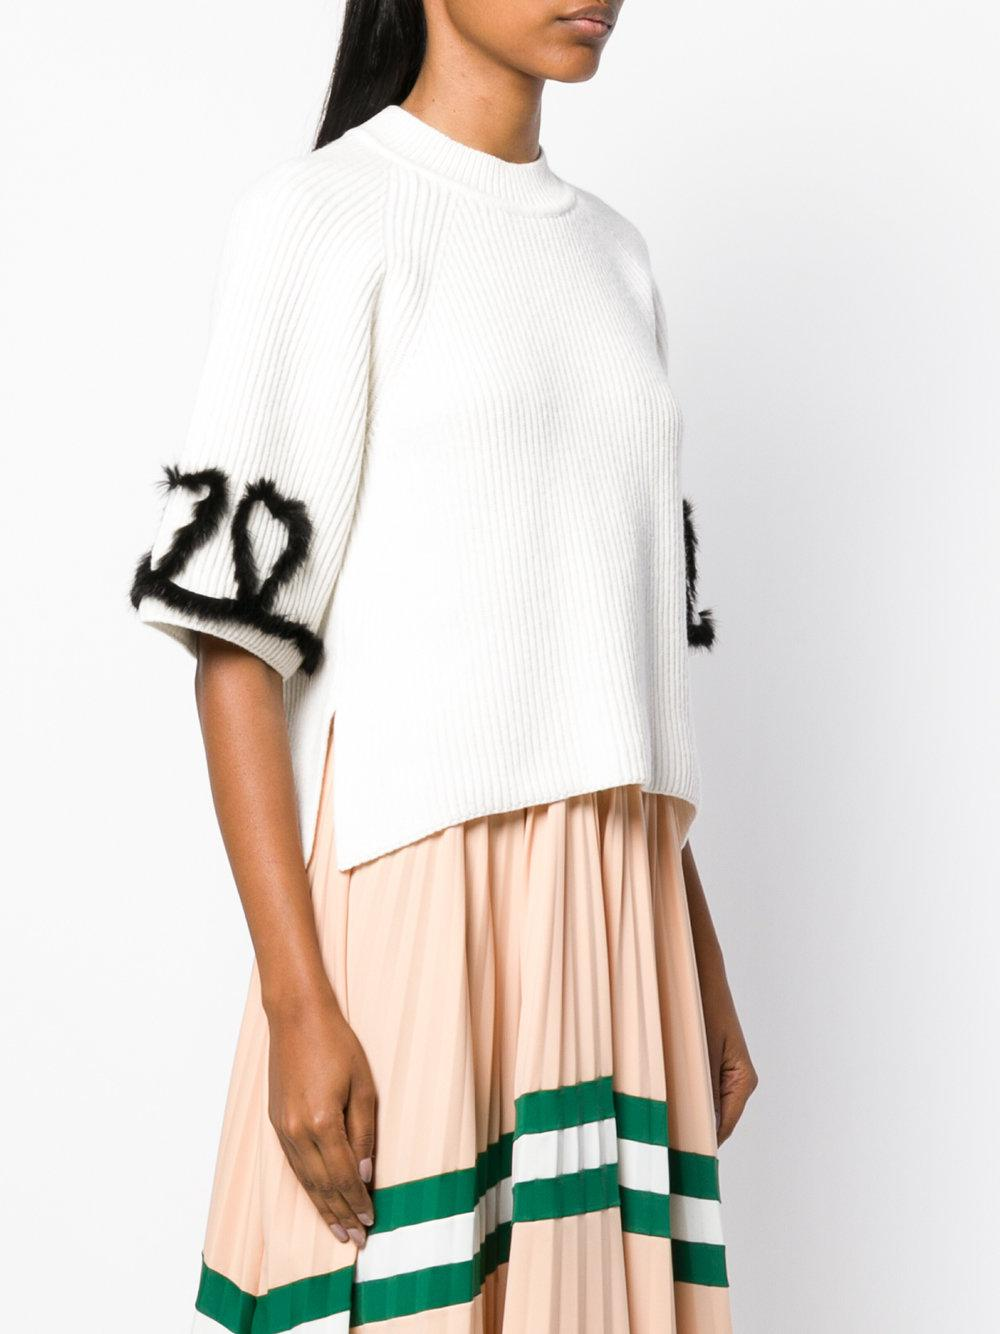 Fendi Wool Ribbed Knitted Top in White